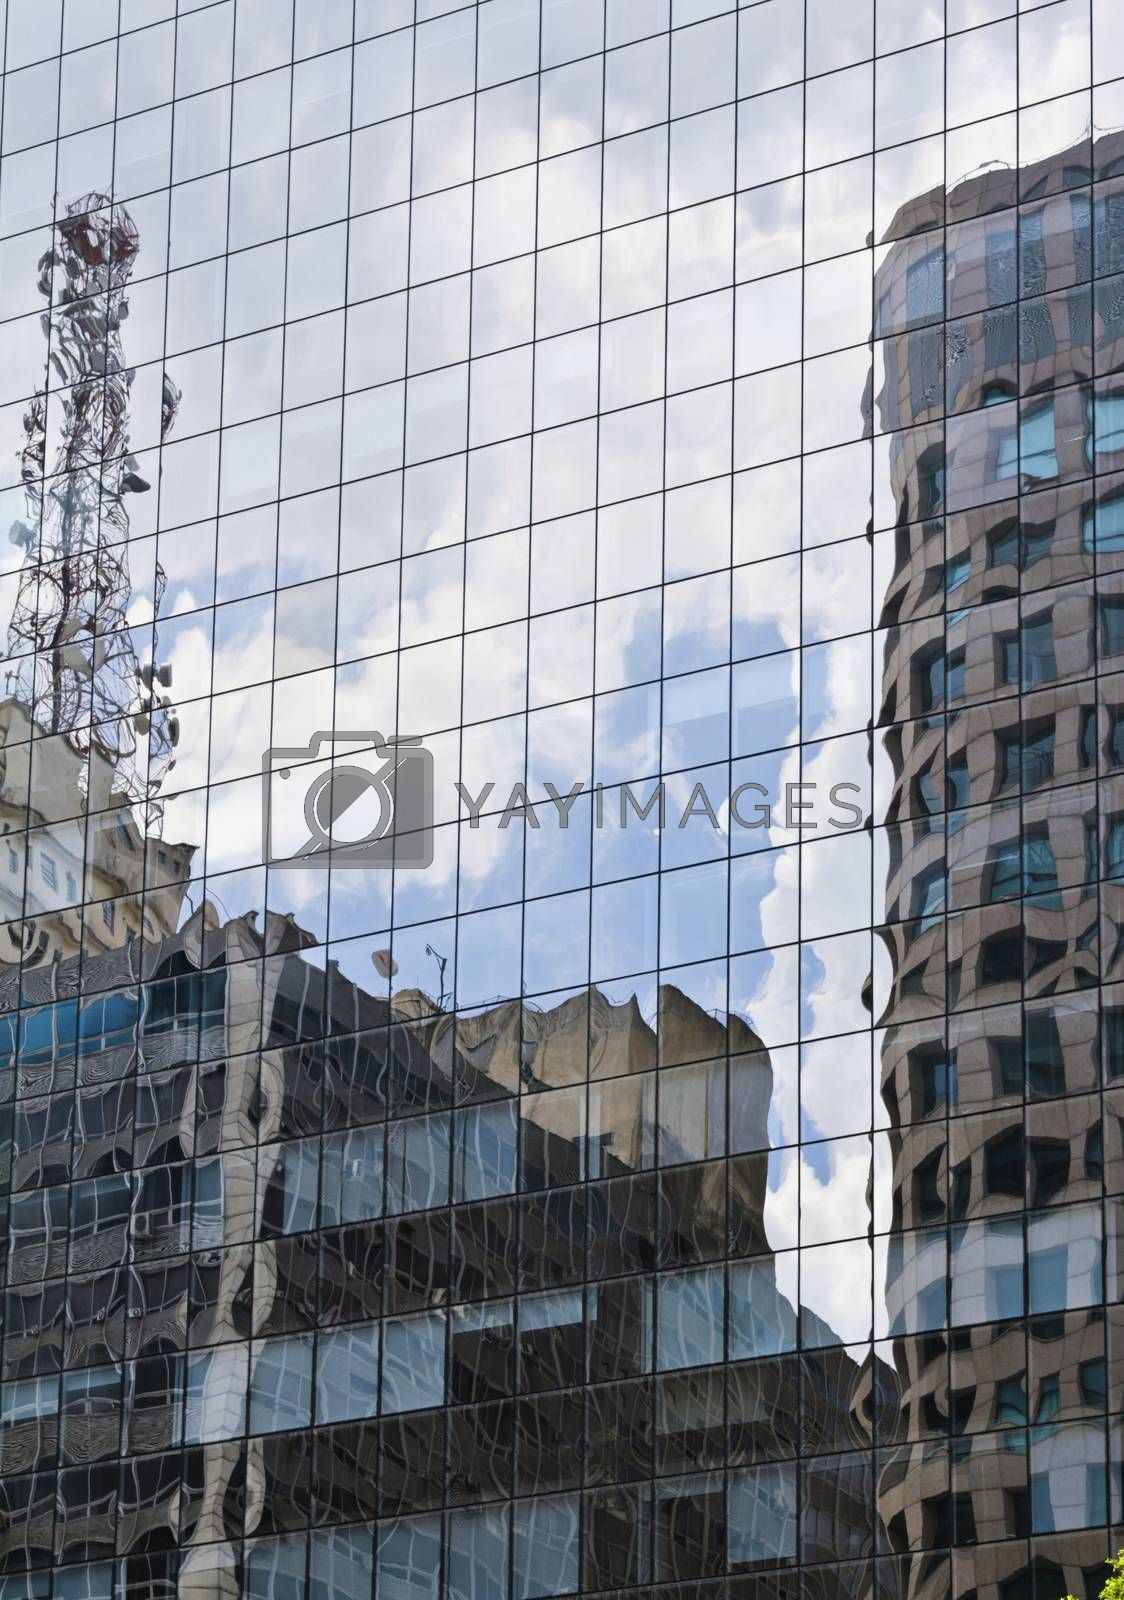 Modern building with glass facade in blue